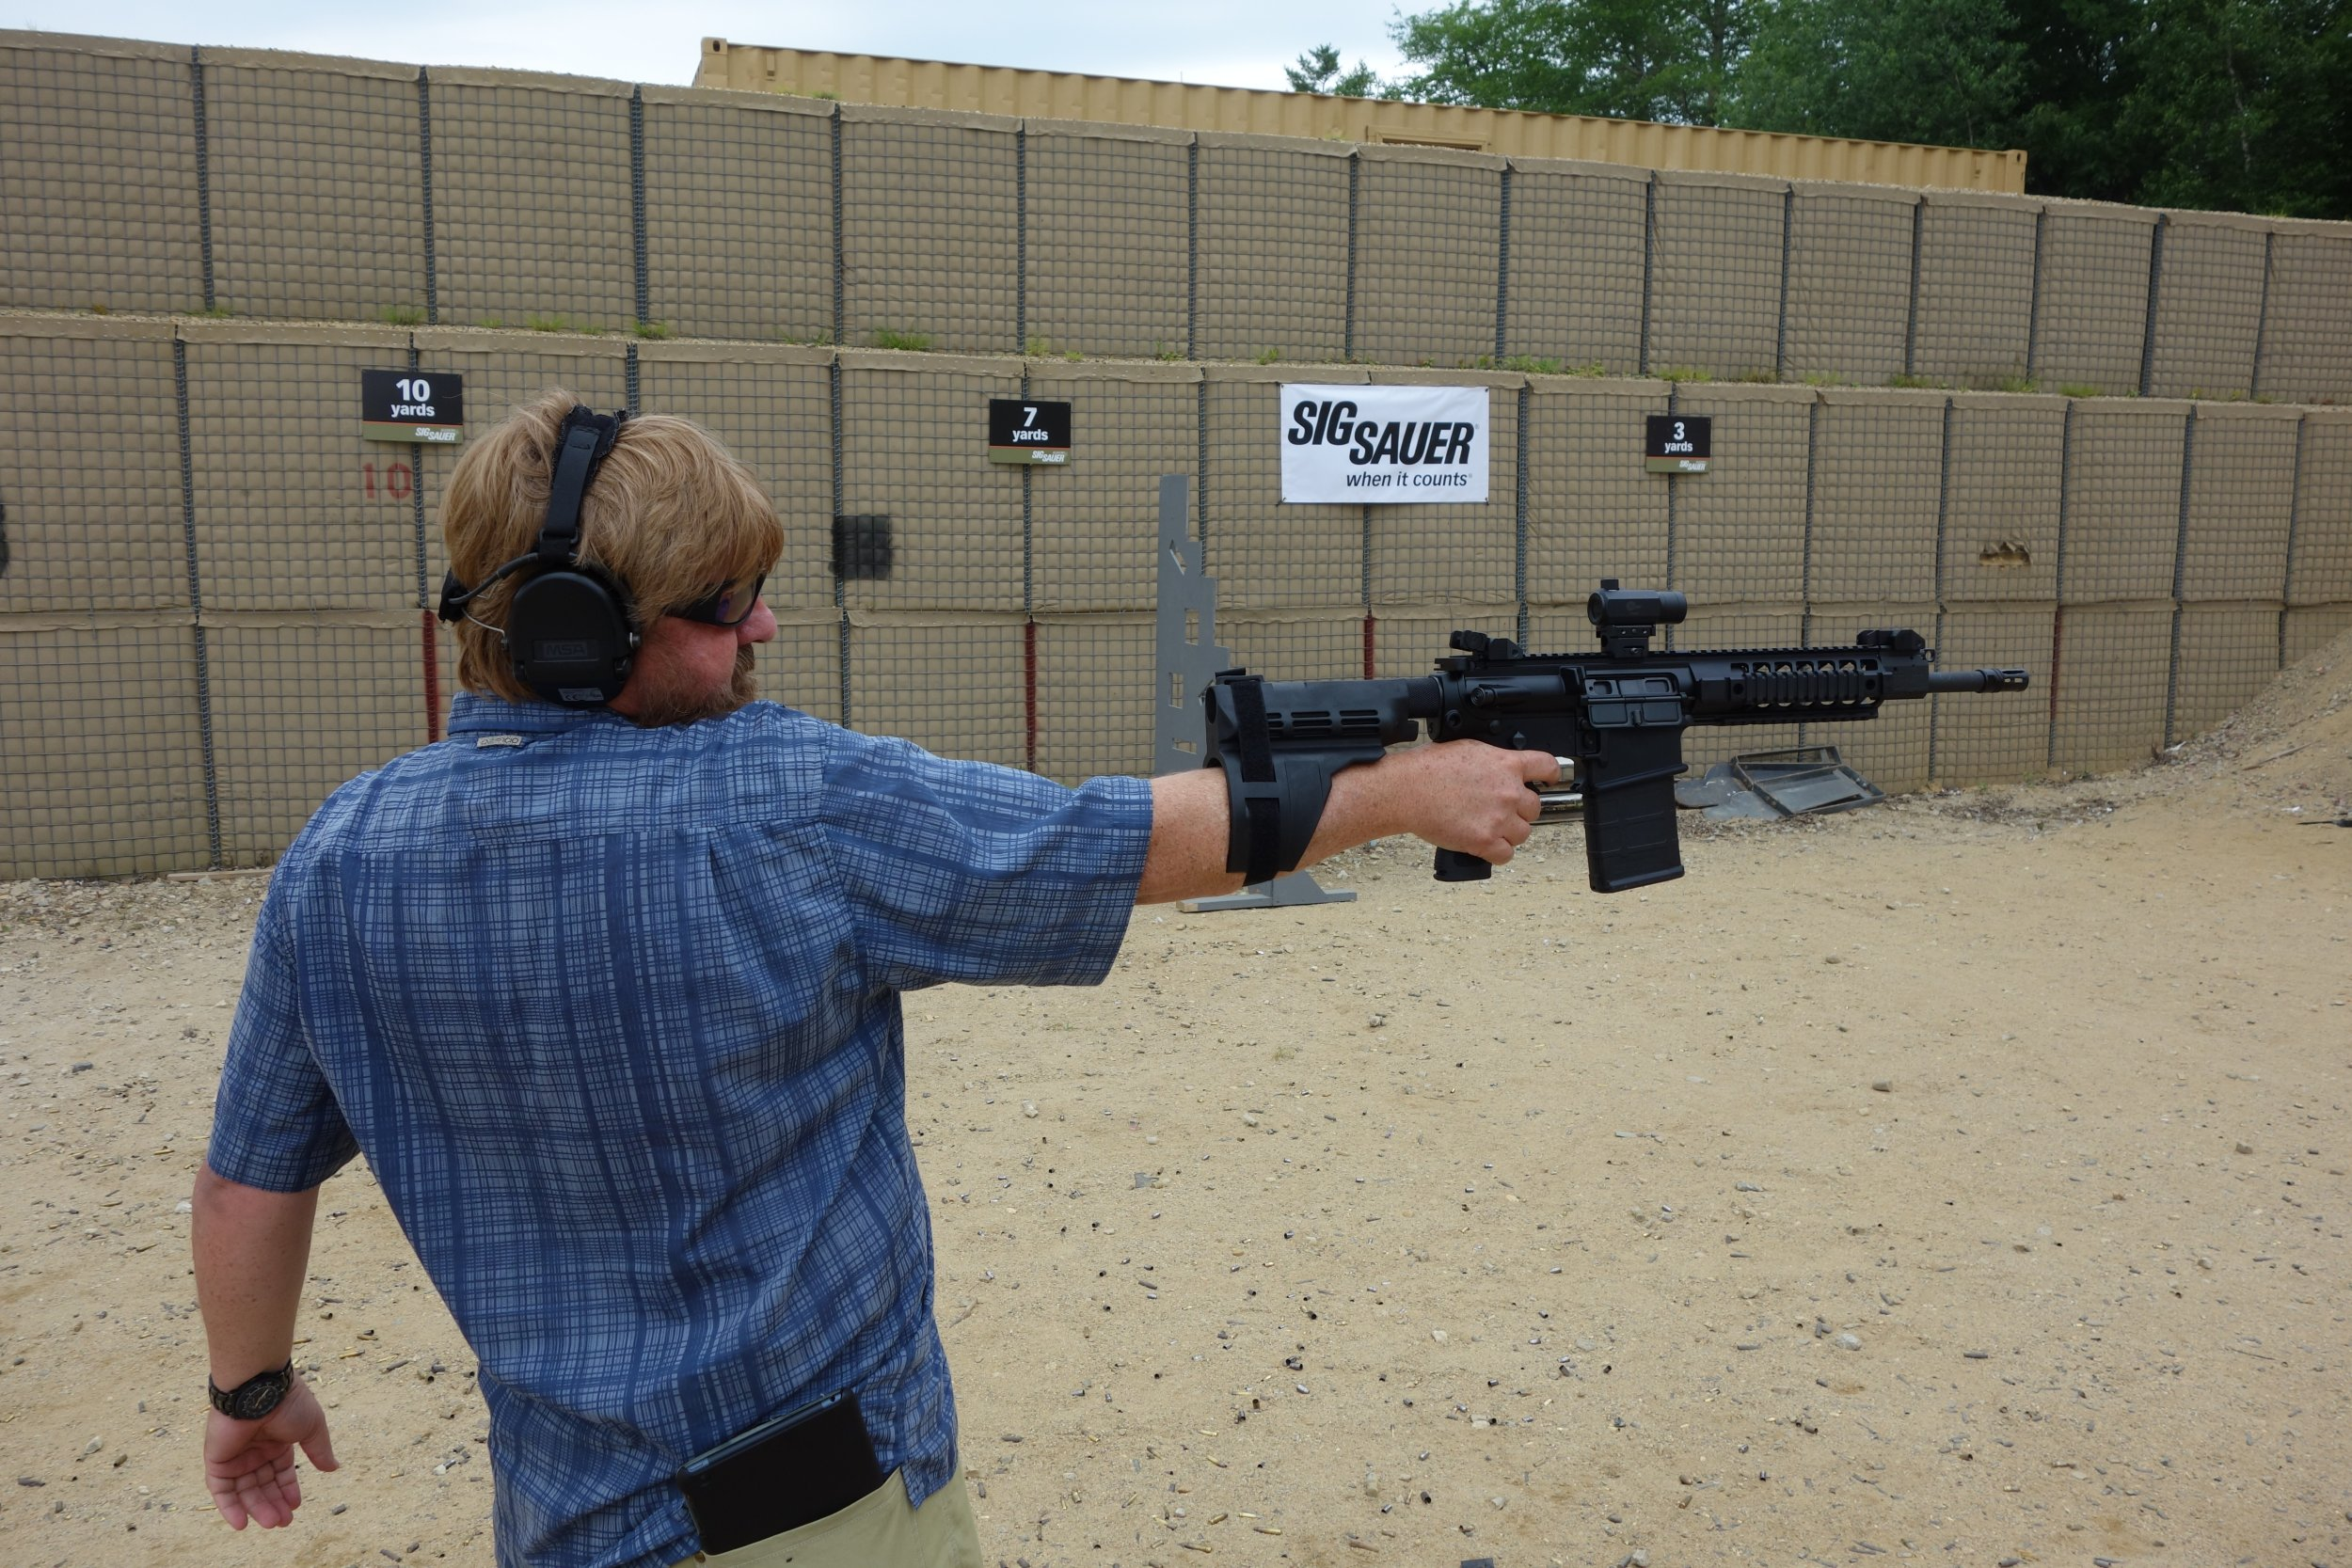 SIG SAUER SIGTac SB15 Pistol Stabilizing Brace on SIG716 7.62mm Tactical Piston AR Carbine SBR Eric Graves Soldier Systems Firing at SIG SAUER Academy Range New Media Writers Event 2014 David Crane DefenseReview.com DR 2 SIG SAUER SIGTac SB15 Pistol Stabilizing Brace for One Handed Firing of Tactical AR 15 Pistols